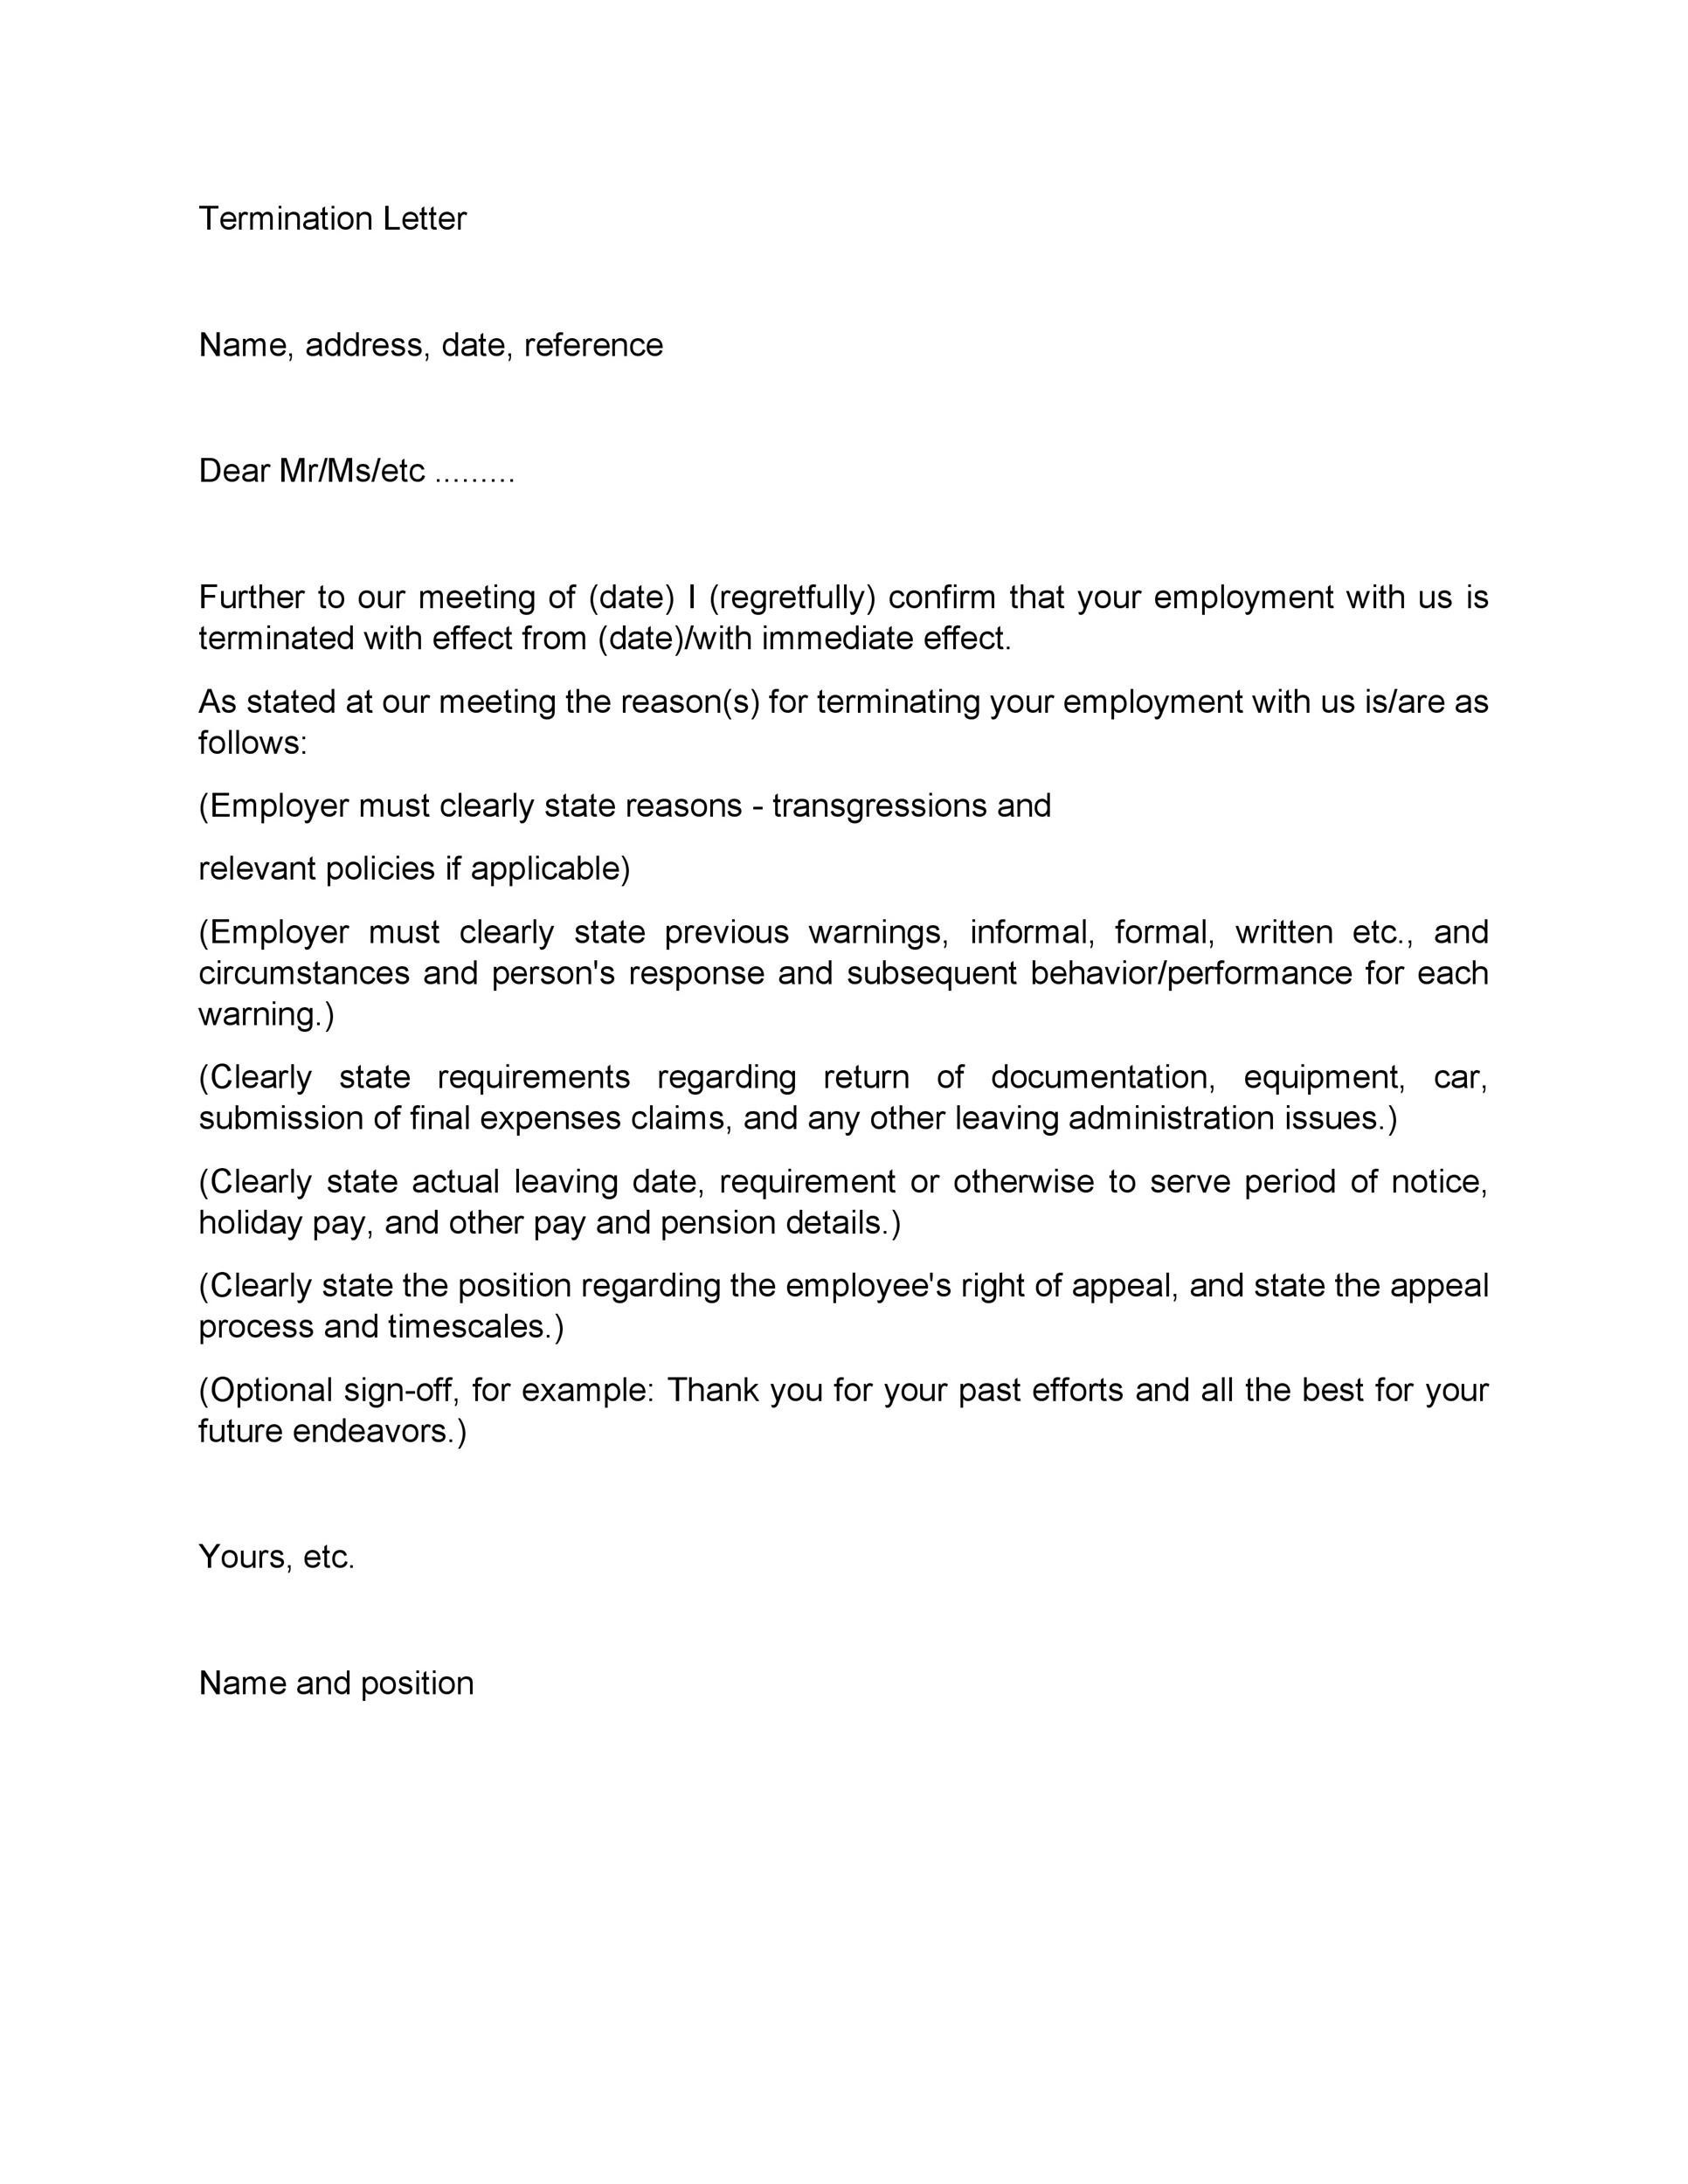 35 Perfect Termination Letter Samples Lease Employee Contract – Termination Template Letter